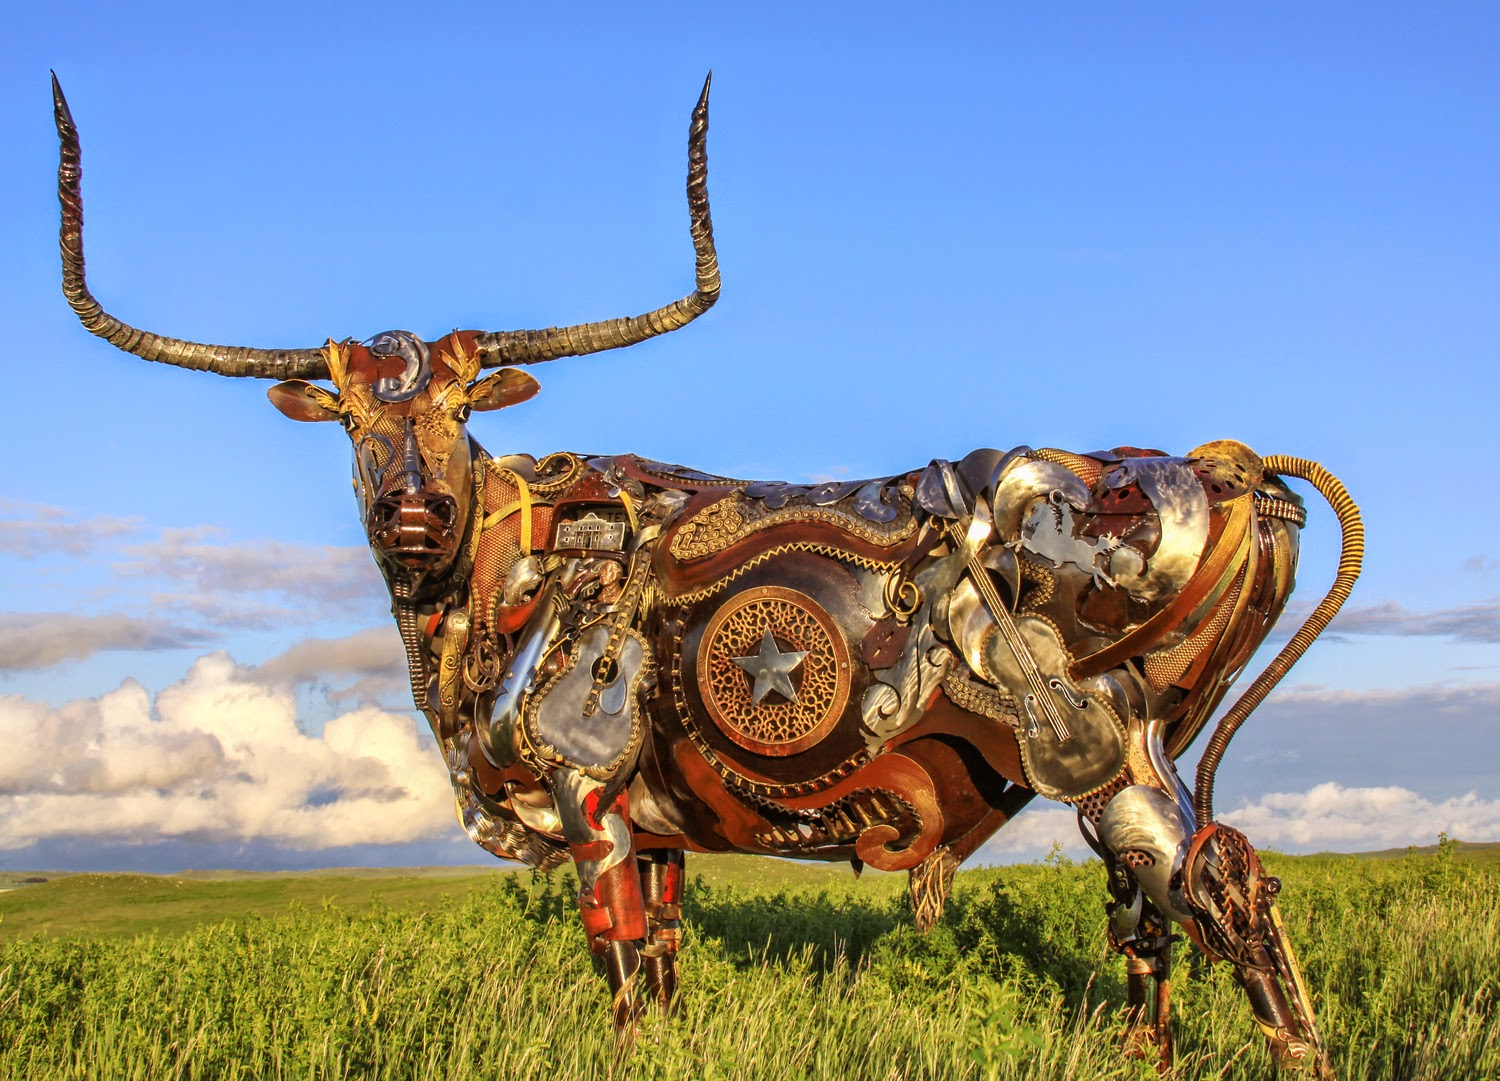 10-John-Lopez-Scrap-Iron-Animal-Sculptures-www-designstack-co